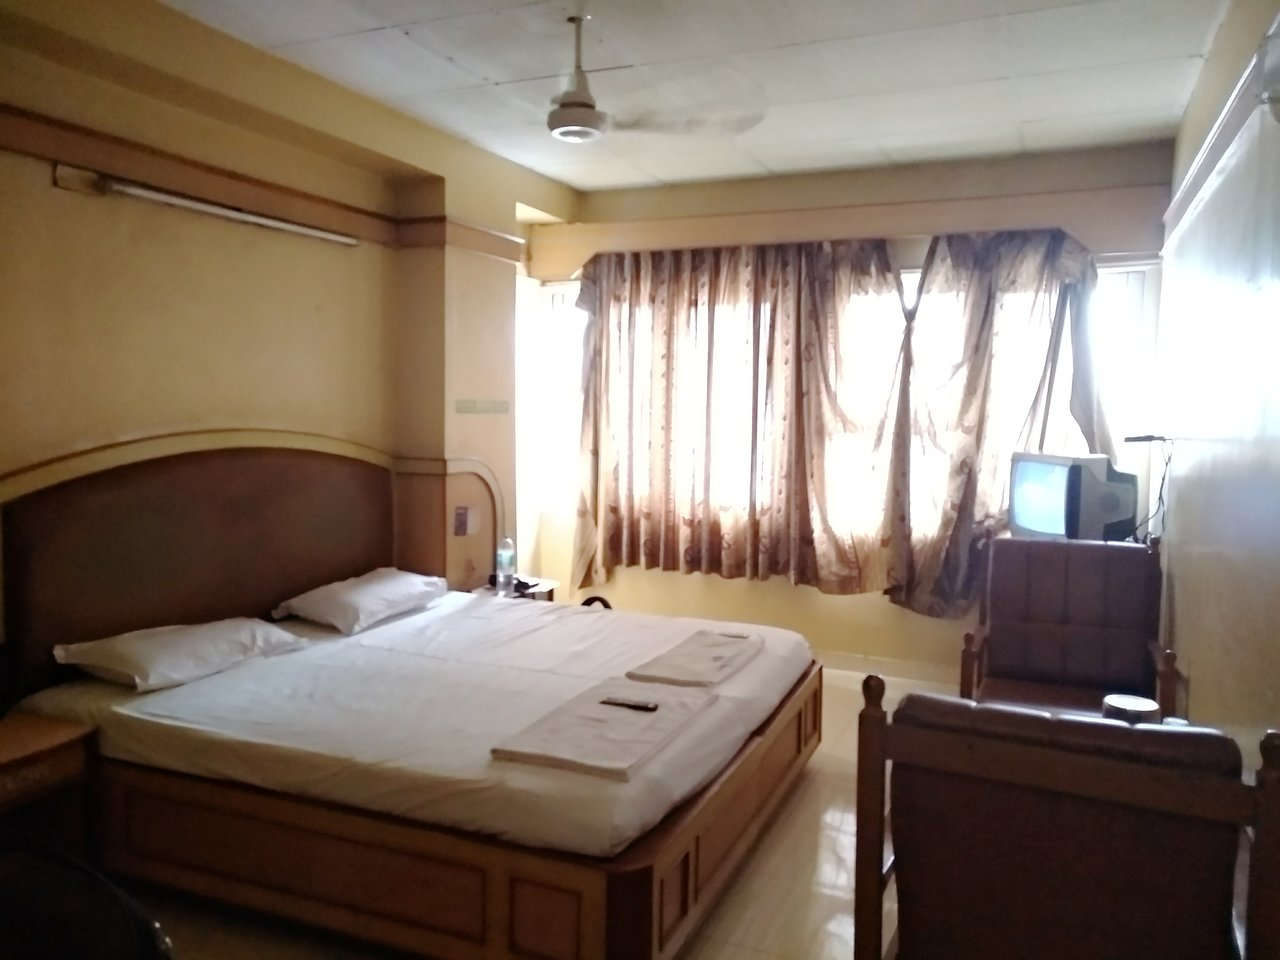 HOTEL OXFORD (Erode, Tamil Nadu) - Hotel Reviews, Photos